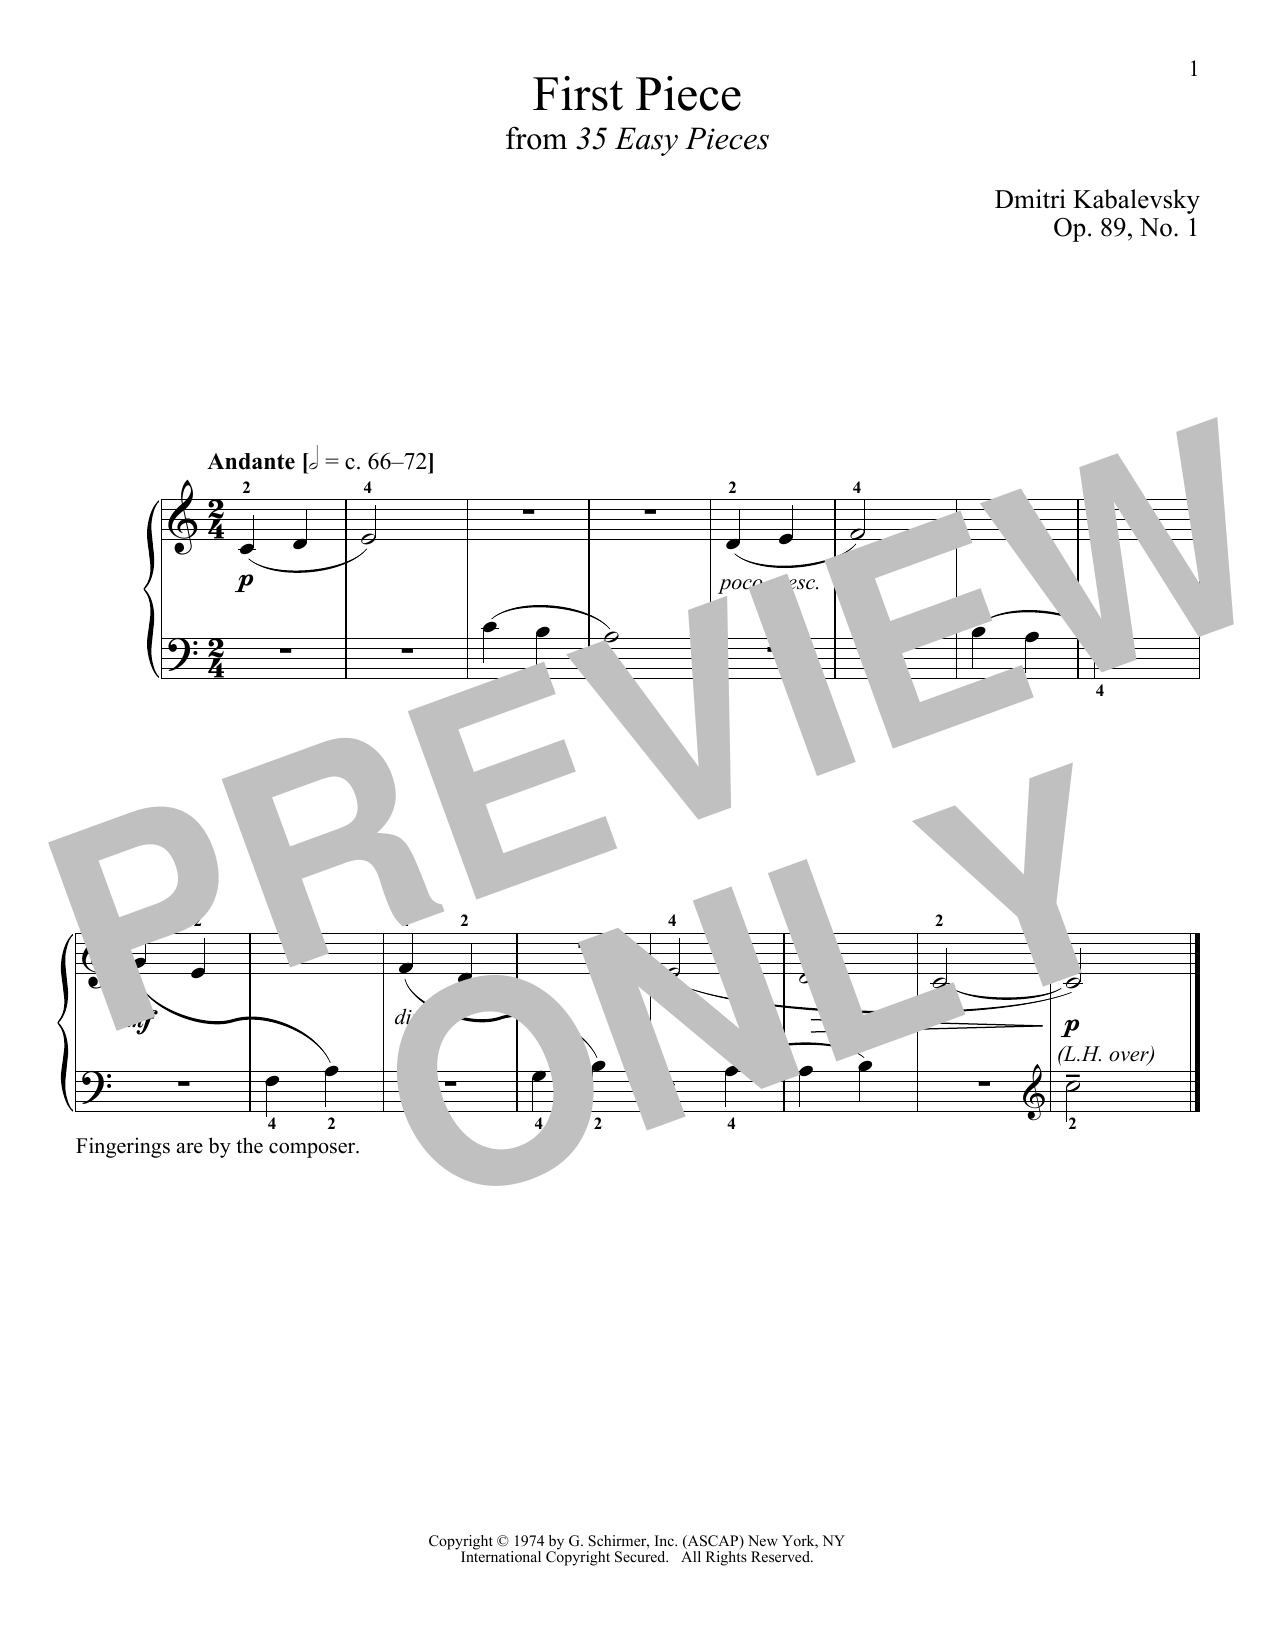 Download Dmitri Kabalevsky 'First Piece, Op. 89, No. 1' Digital Sheet Music Notes & Chords and start playing in minutes